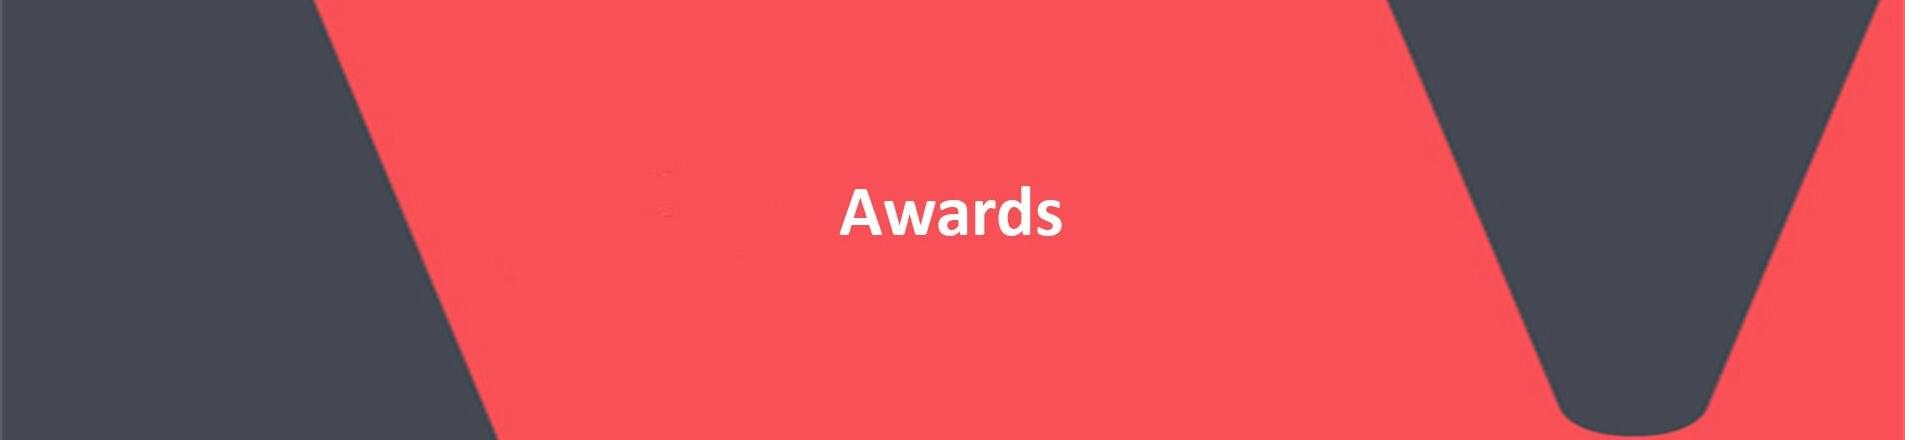 The word 'Awards ' on red VERCIDA background